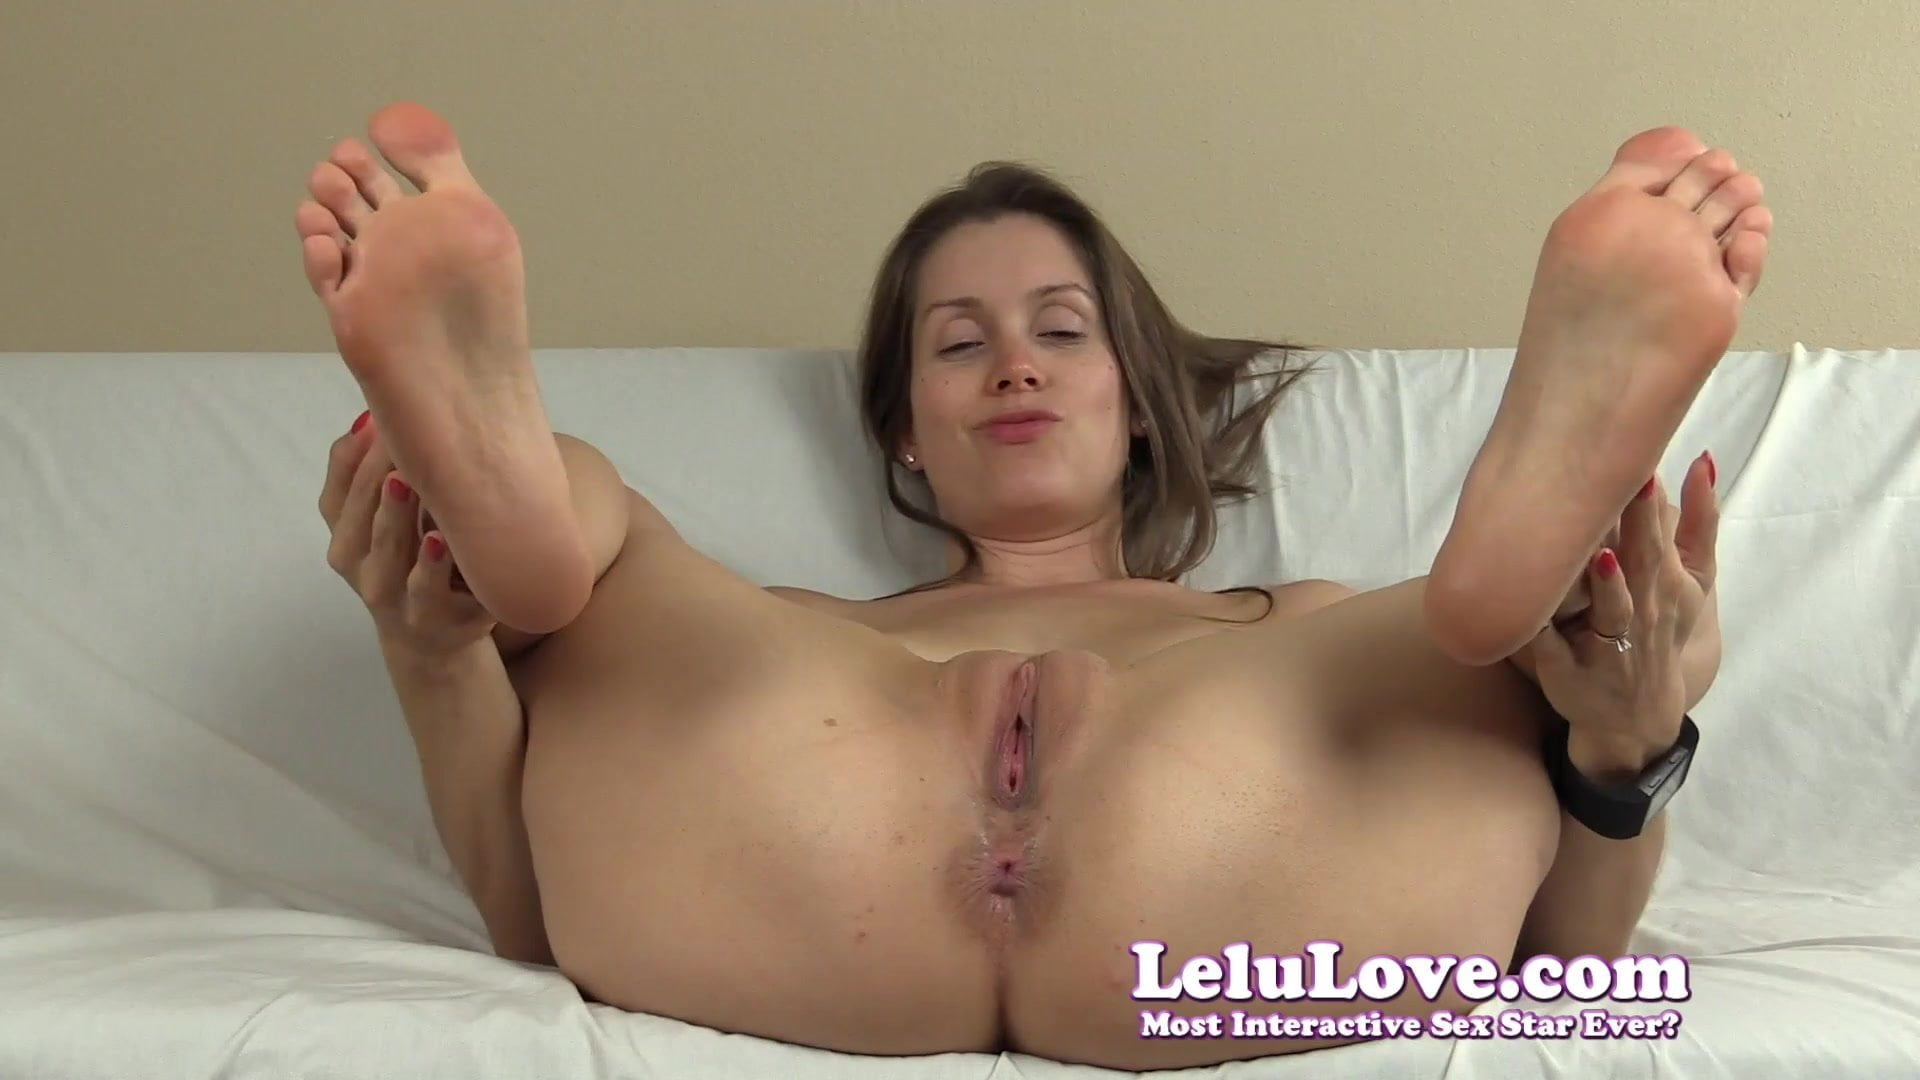 anal anal black spread feet fuck